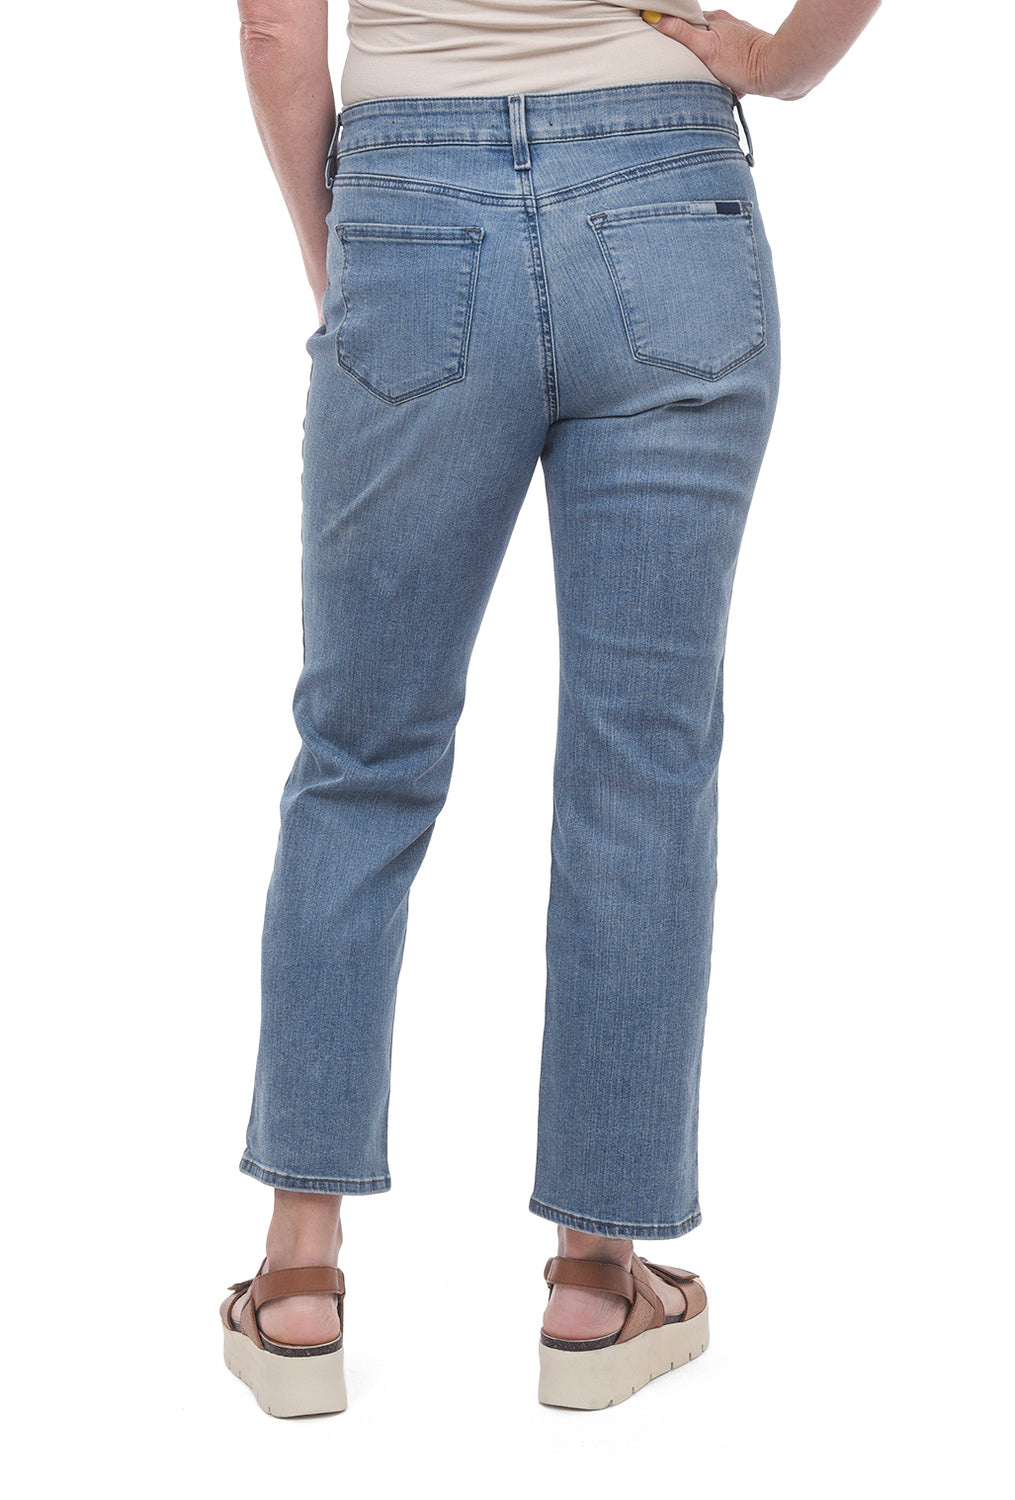 NYDJ Marilyn Straight Ankle Jeans, Pacific Blue